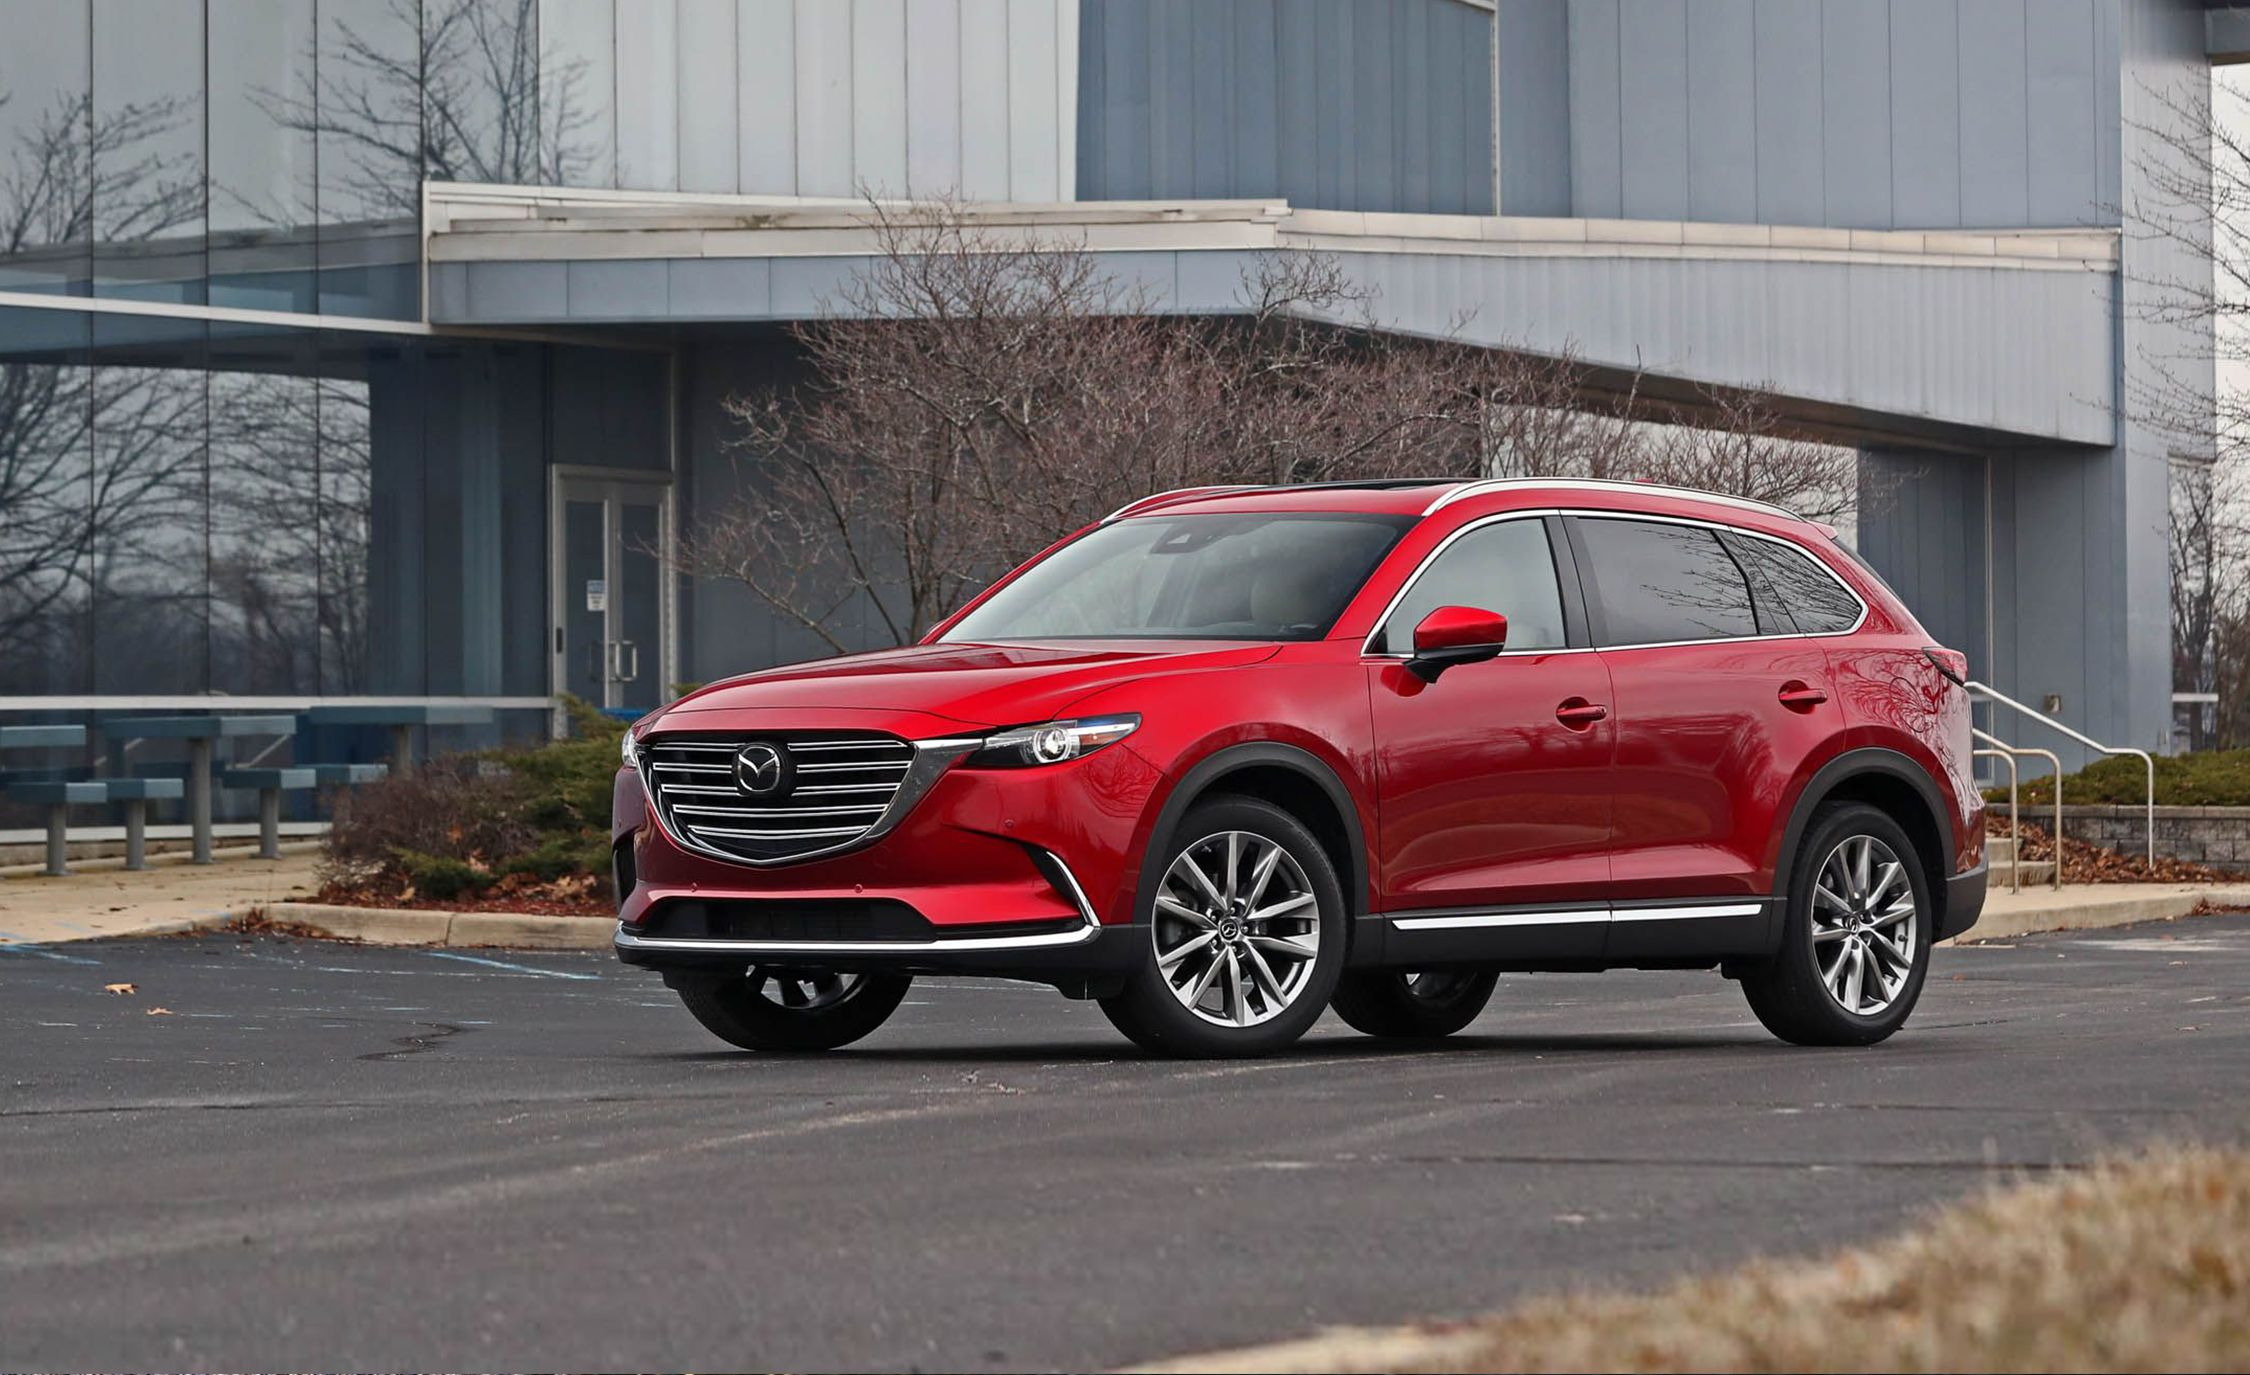 2019 mazda cx 9 reviews mazda cx 9 price photos and specs car and driver. Black Bedroom Furniture Sets. Home Design Ideas